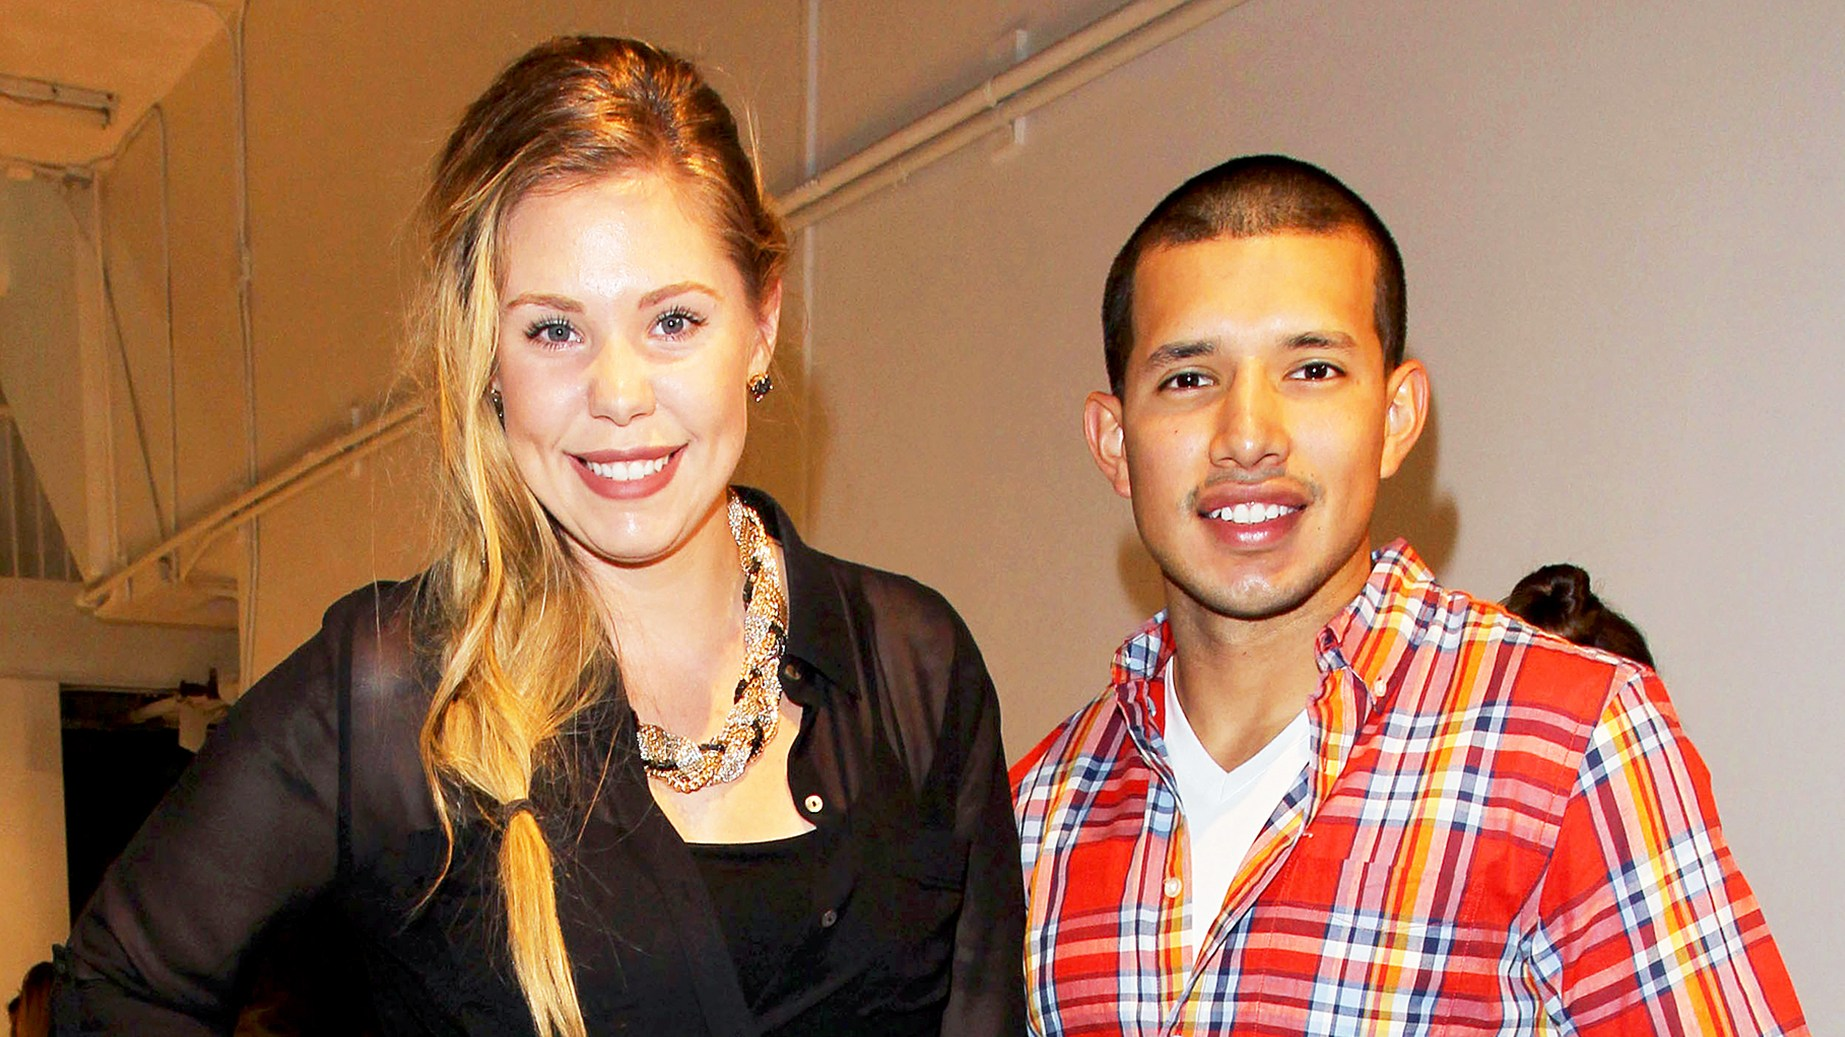 Kailyn Lowry and Javi Marroquin Teen Mom